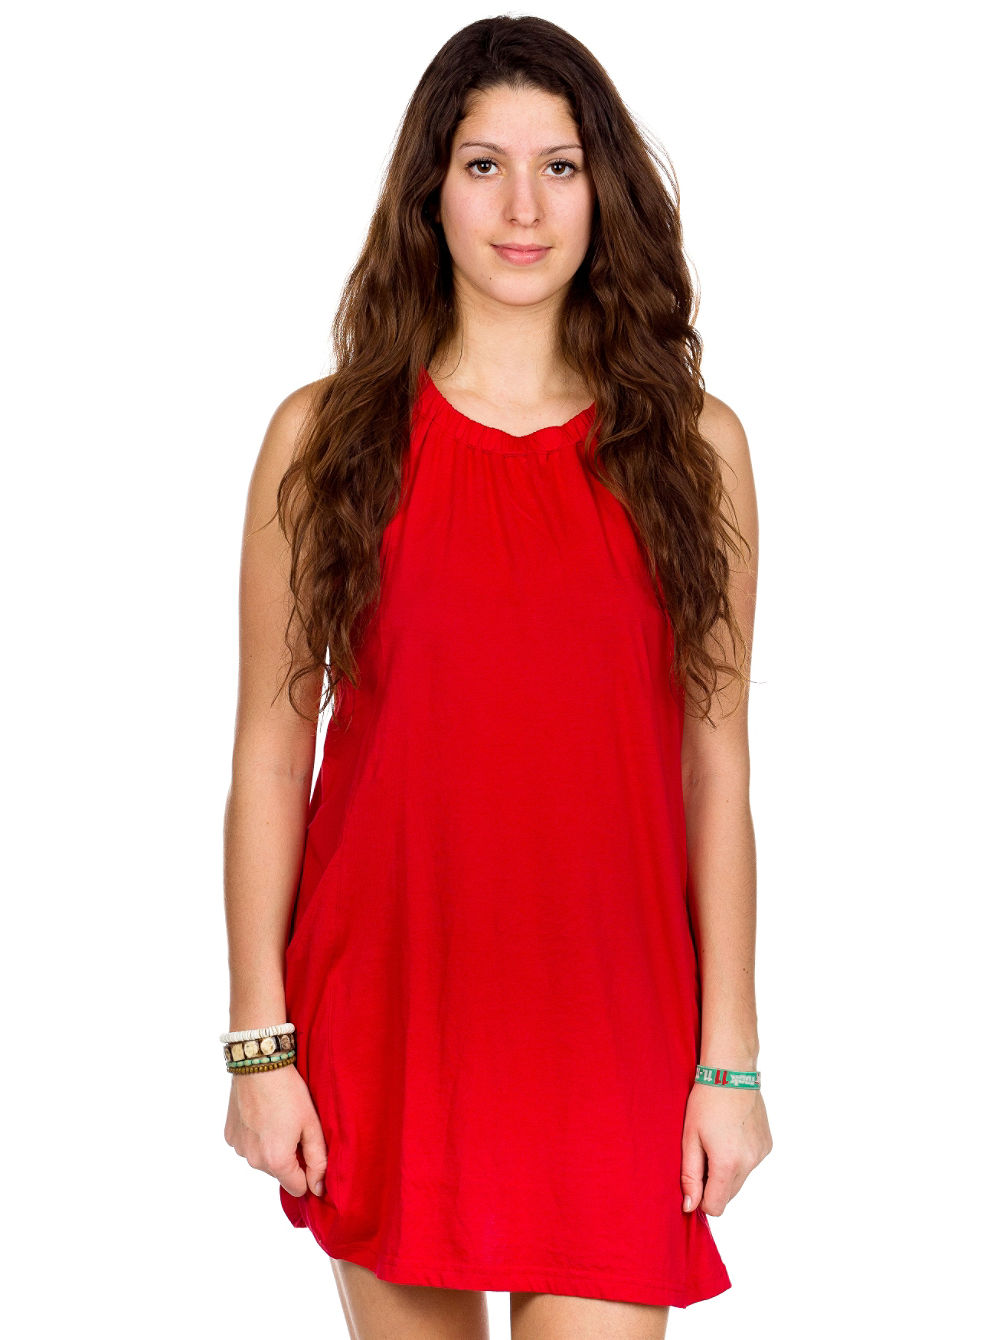 Stone Peace Tube Dress Women